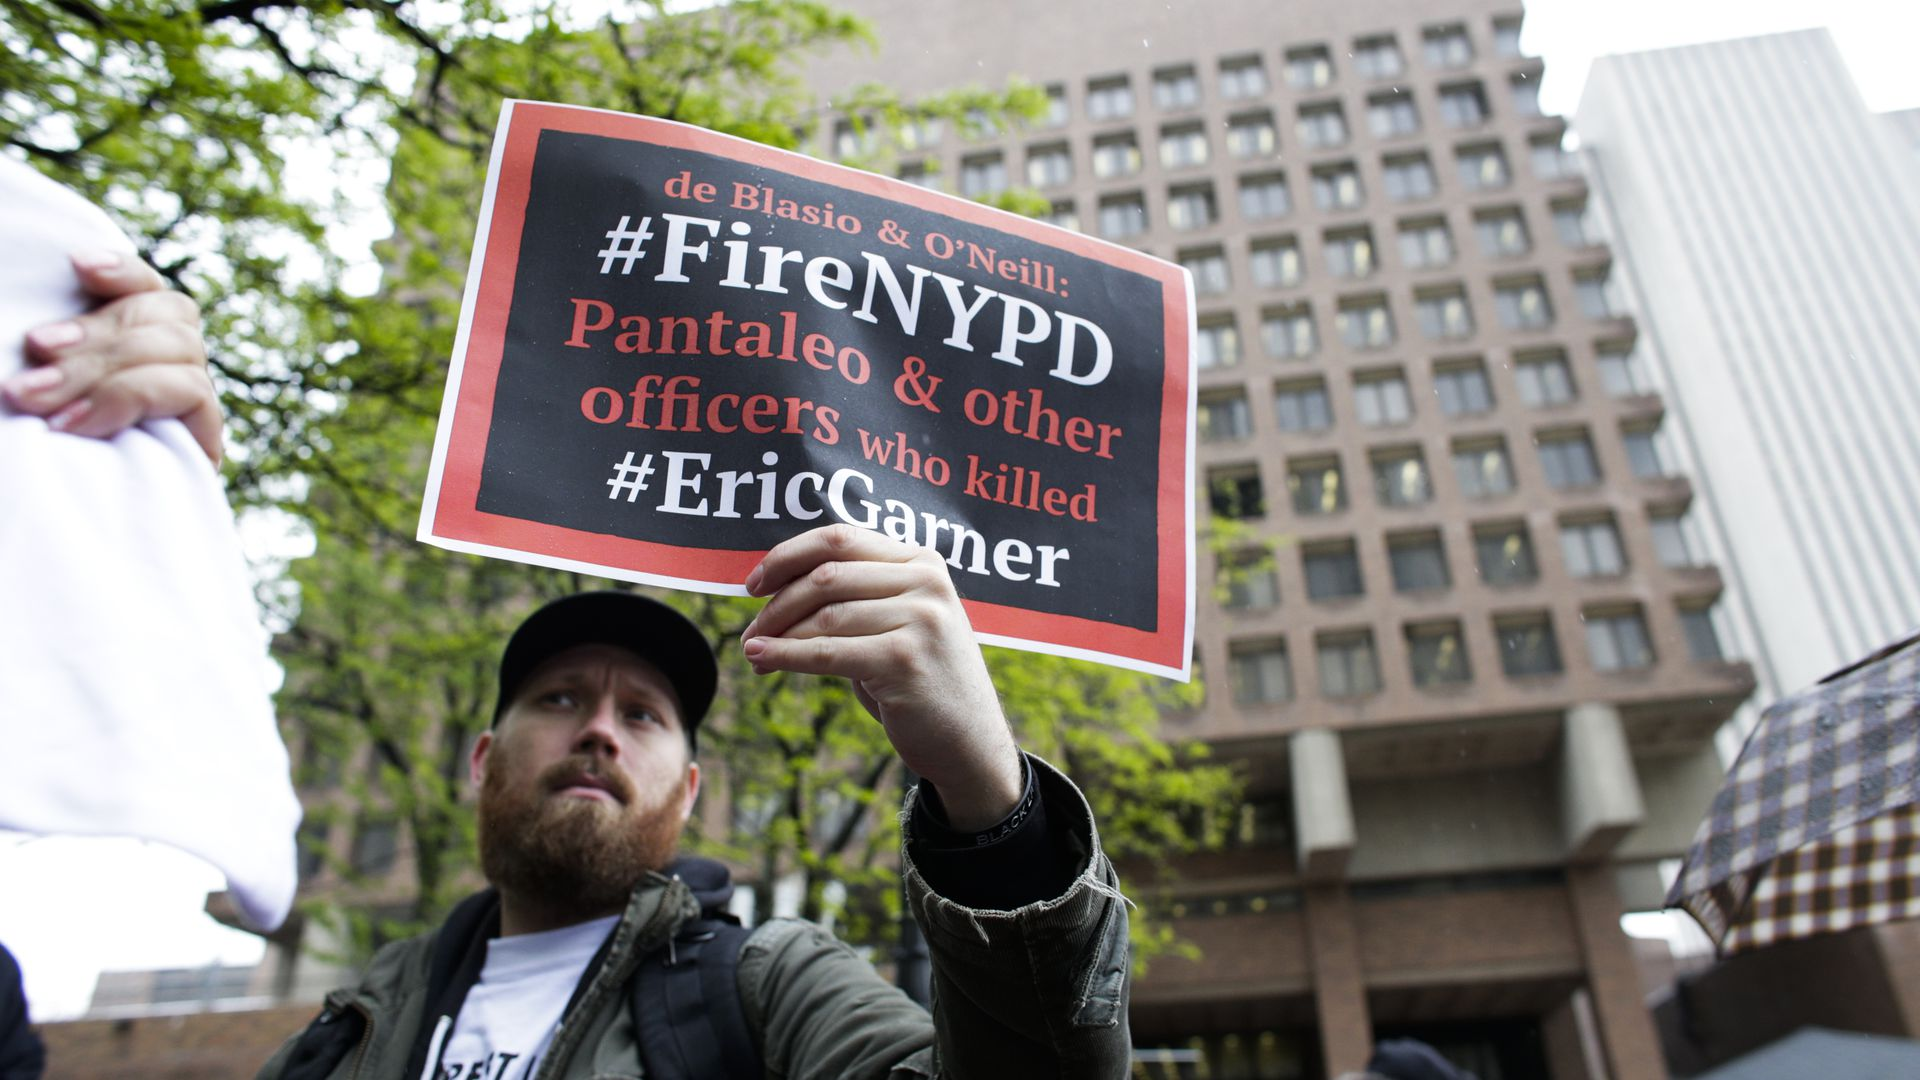 Protestor holding a sign saying officers involved in Eric Garner's death should be fired